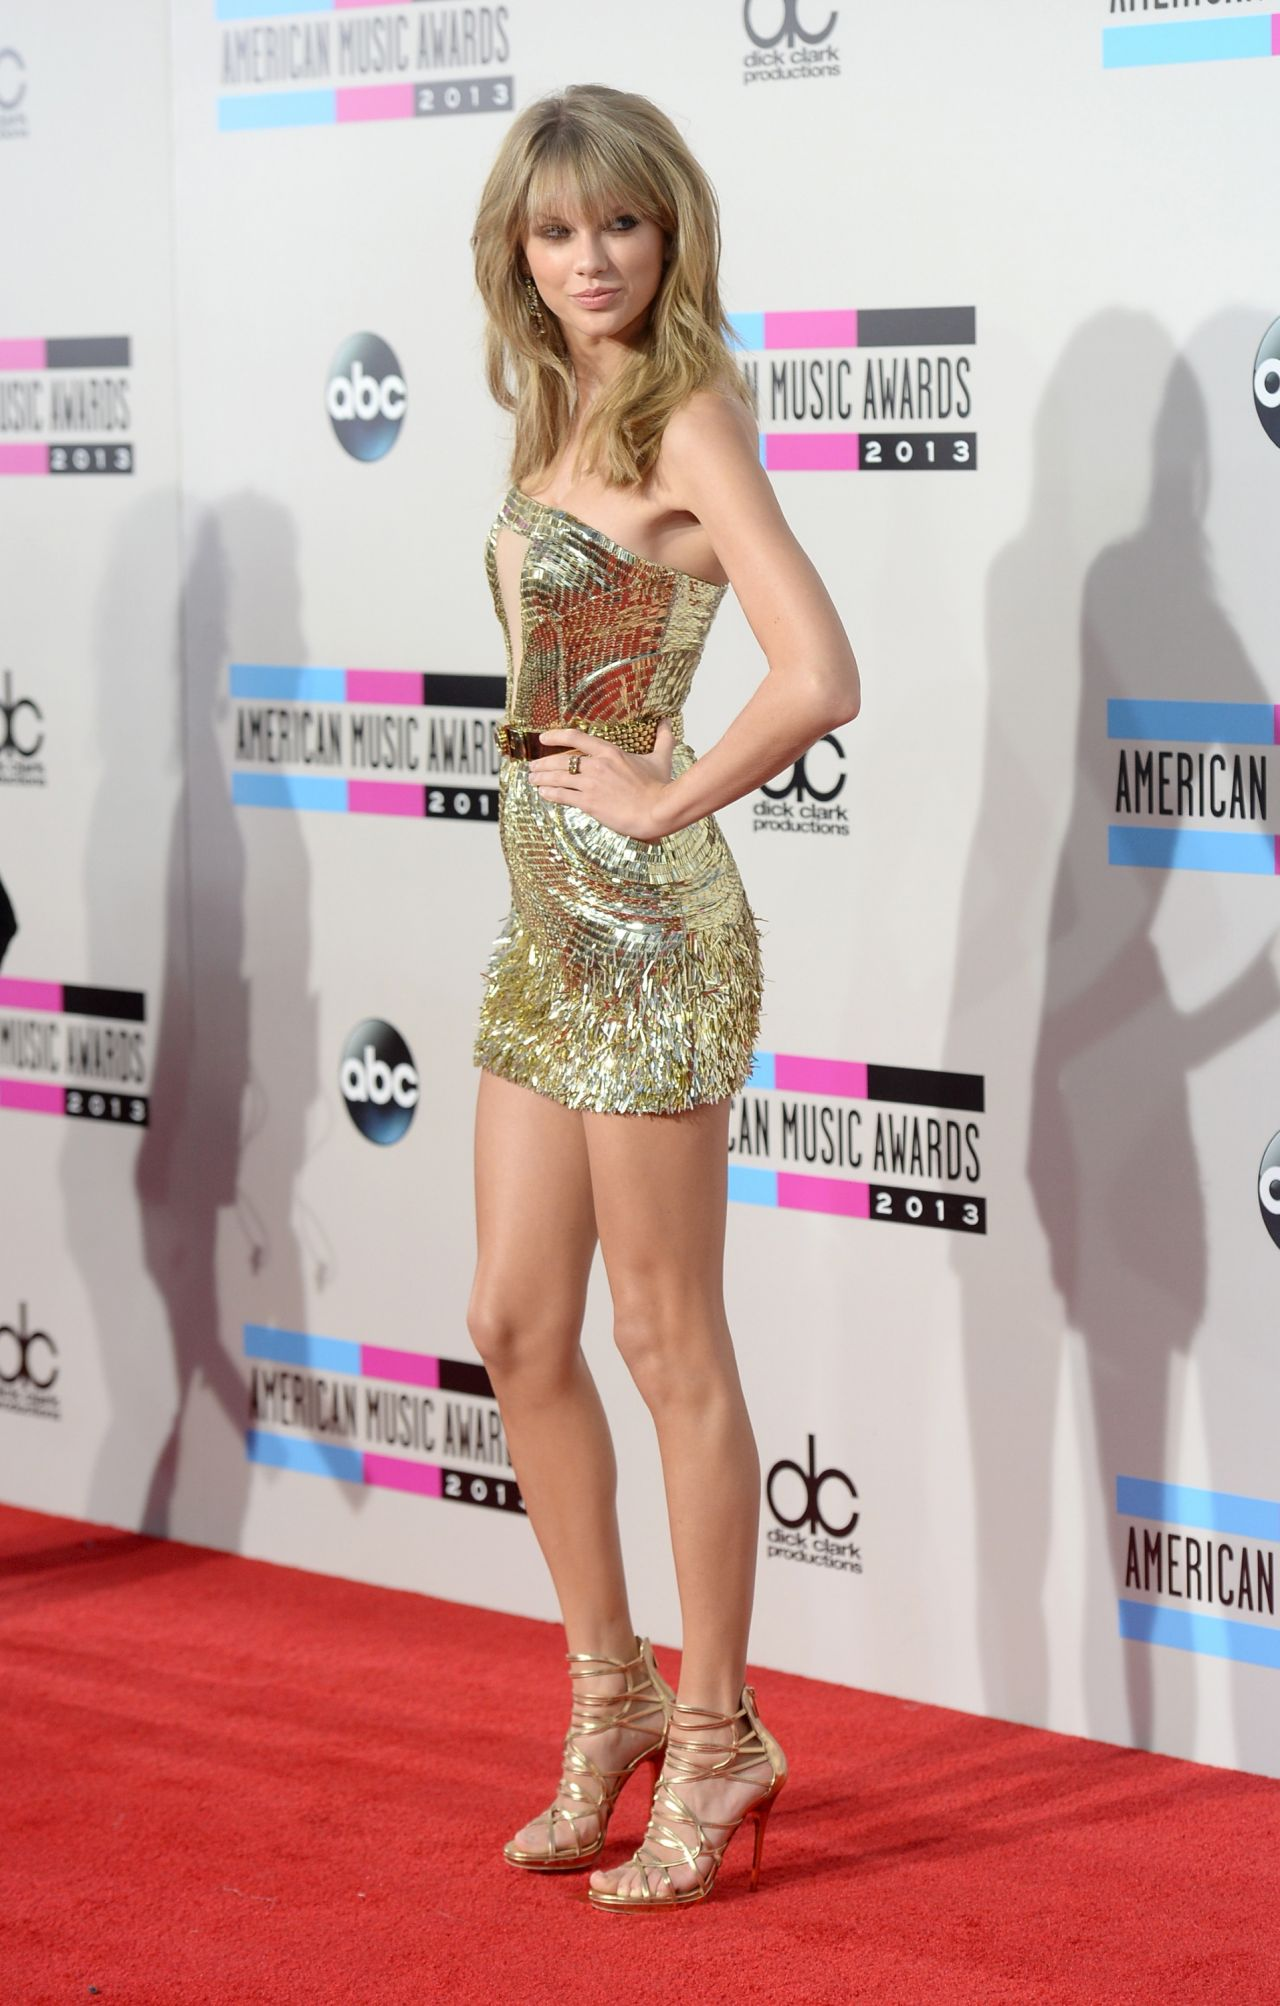 Taylor Swift Looks Hot on Red Carpet – 2013 American Music Awards in Los Angeles